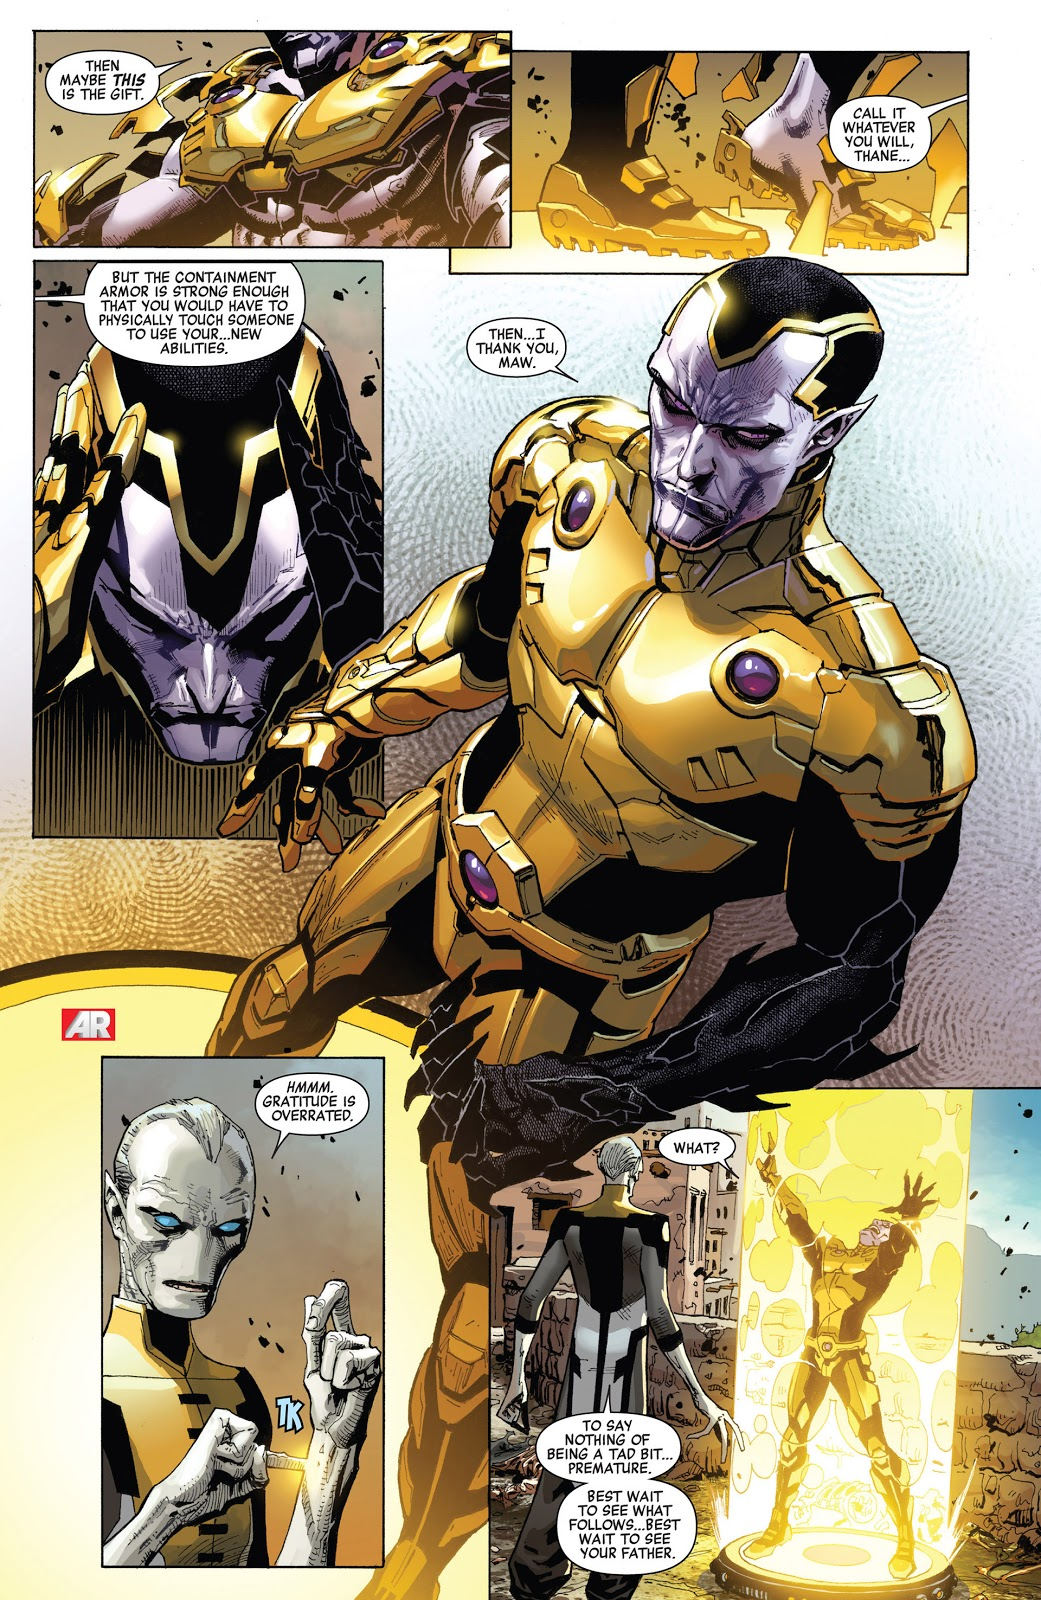 In 'Infinity' (2013) #5, Ebony Maw grants Thane a containmen armor then imprisons him in a containment field.